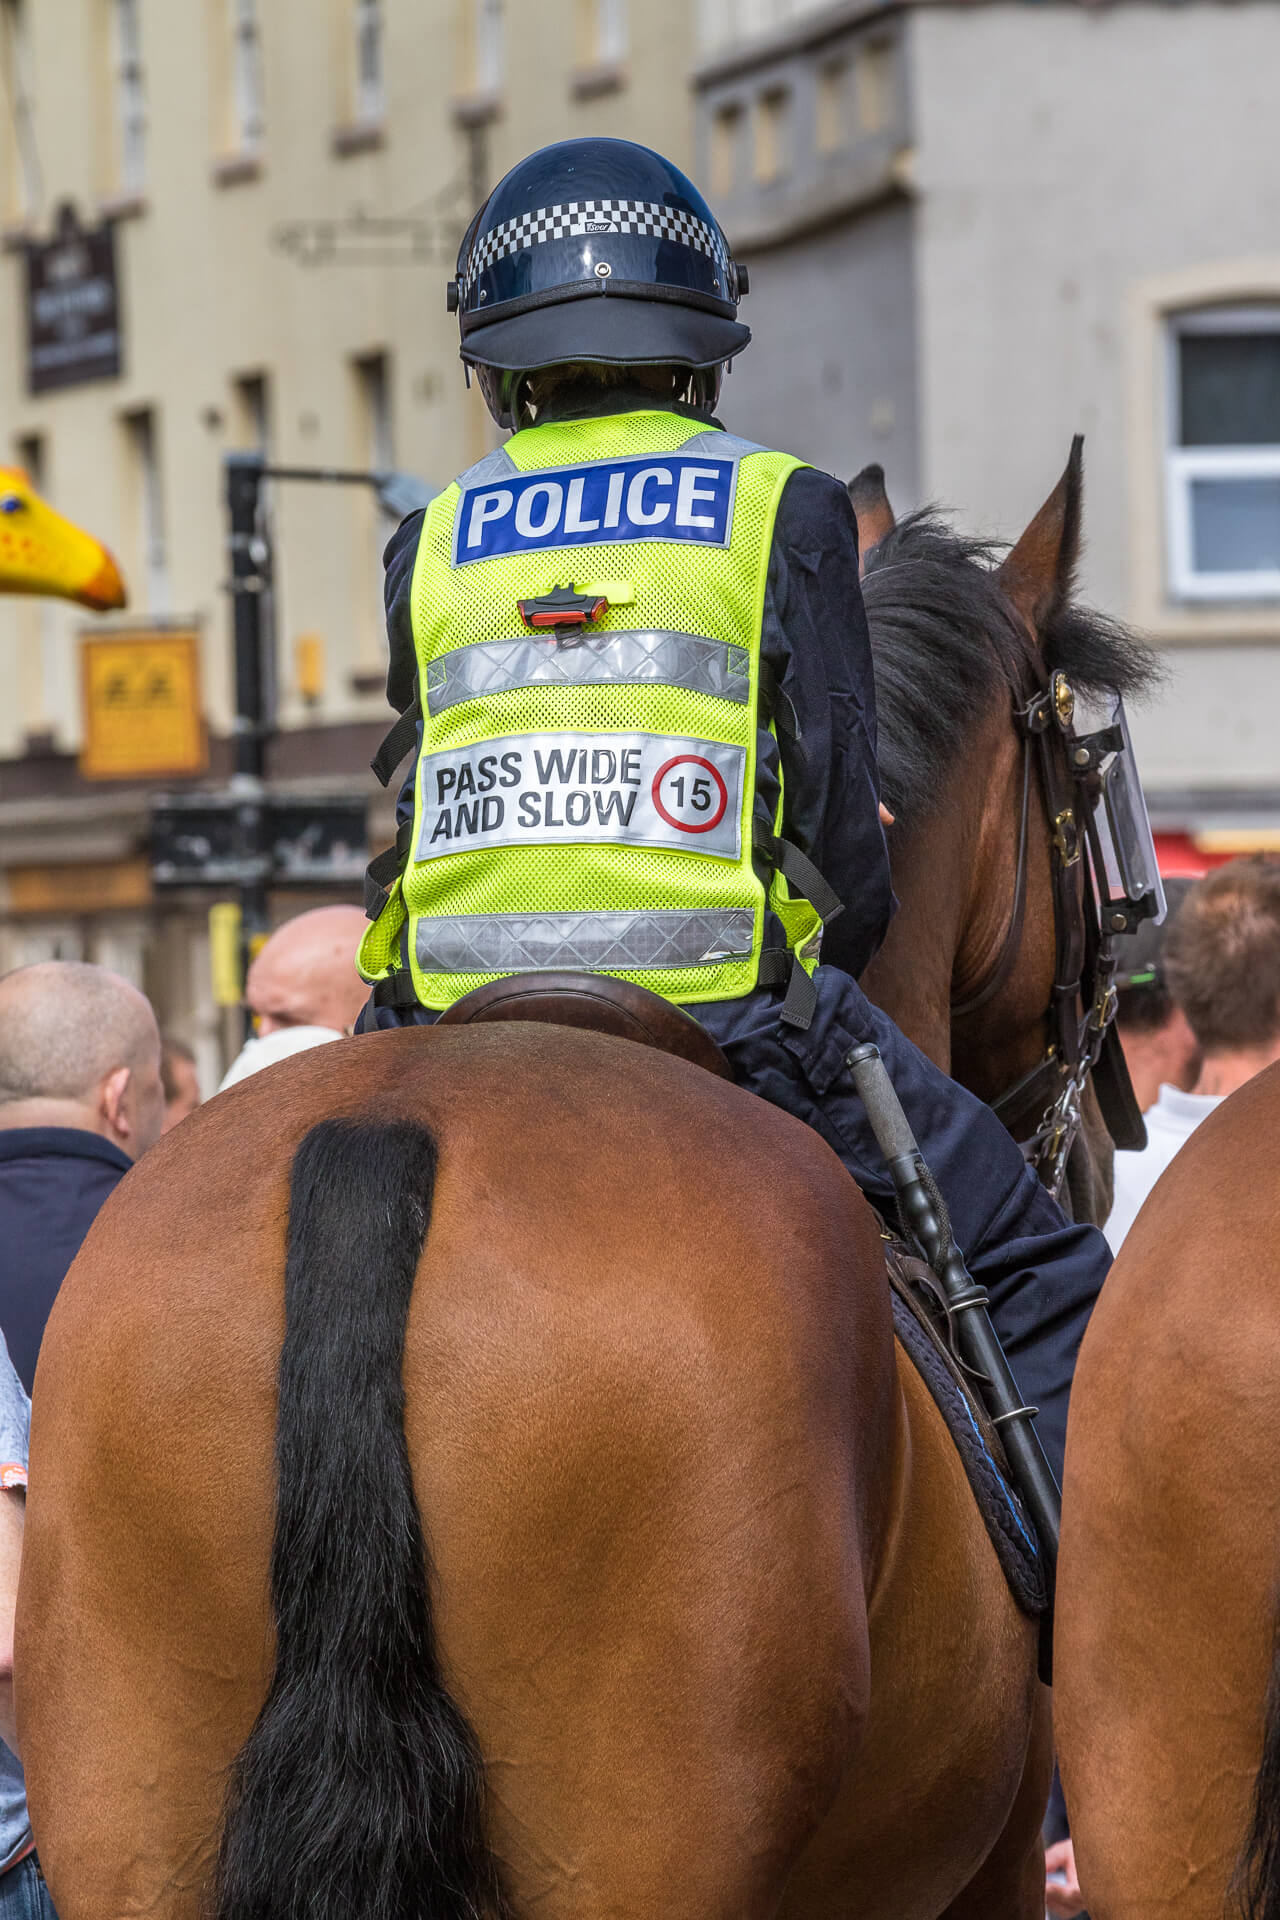 A rear view of a chestnut coloured Police Horse and its Rider seen policing the BNP Marches in Worcester in 2019. Atop her mount the female officer wears a Hi Viz vest with POLICE written on it, attached to it is a small flashing red bicycle type light, and underneath the light are the words, PASS WIDE AND SLOW with a 15mph limit symbol.